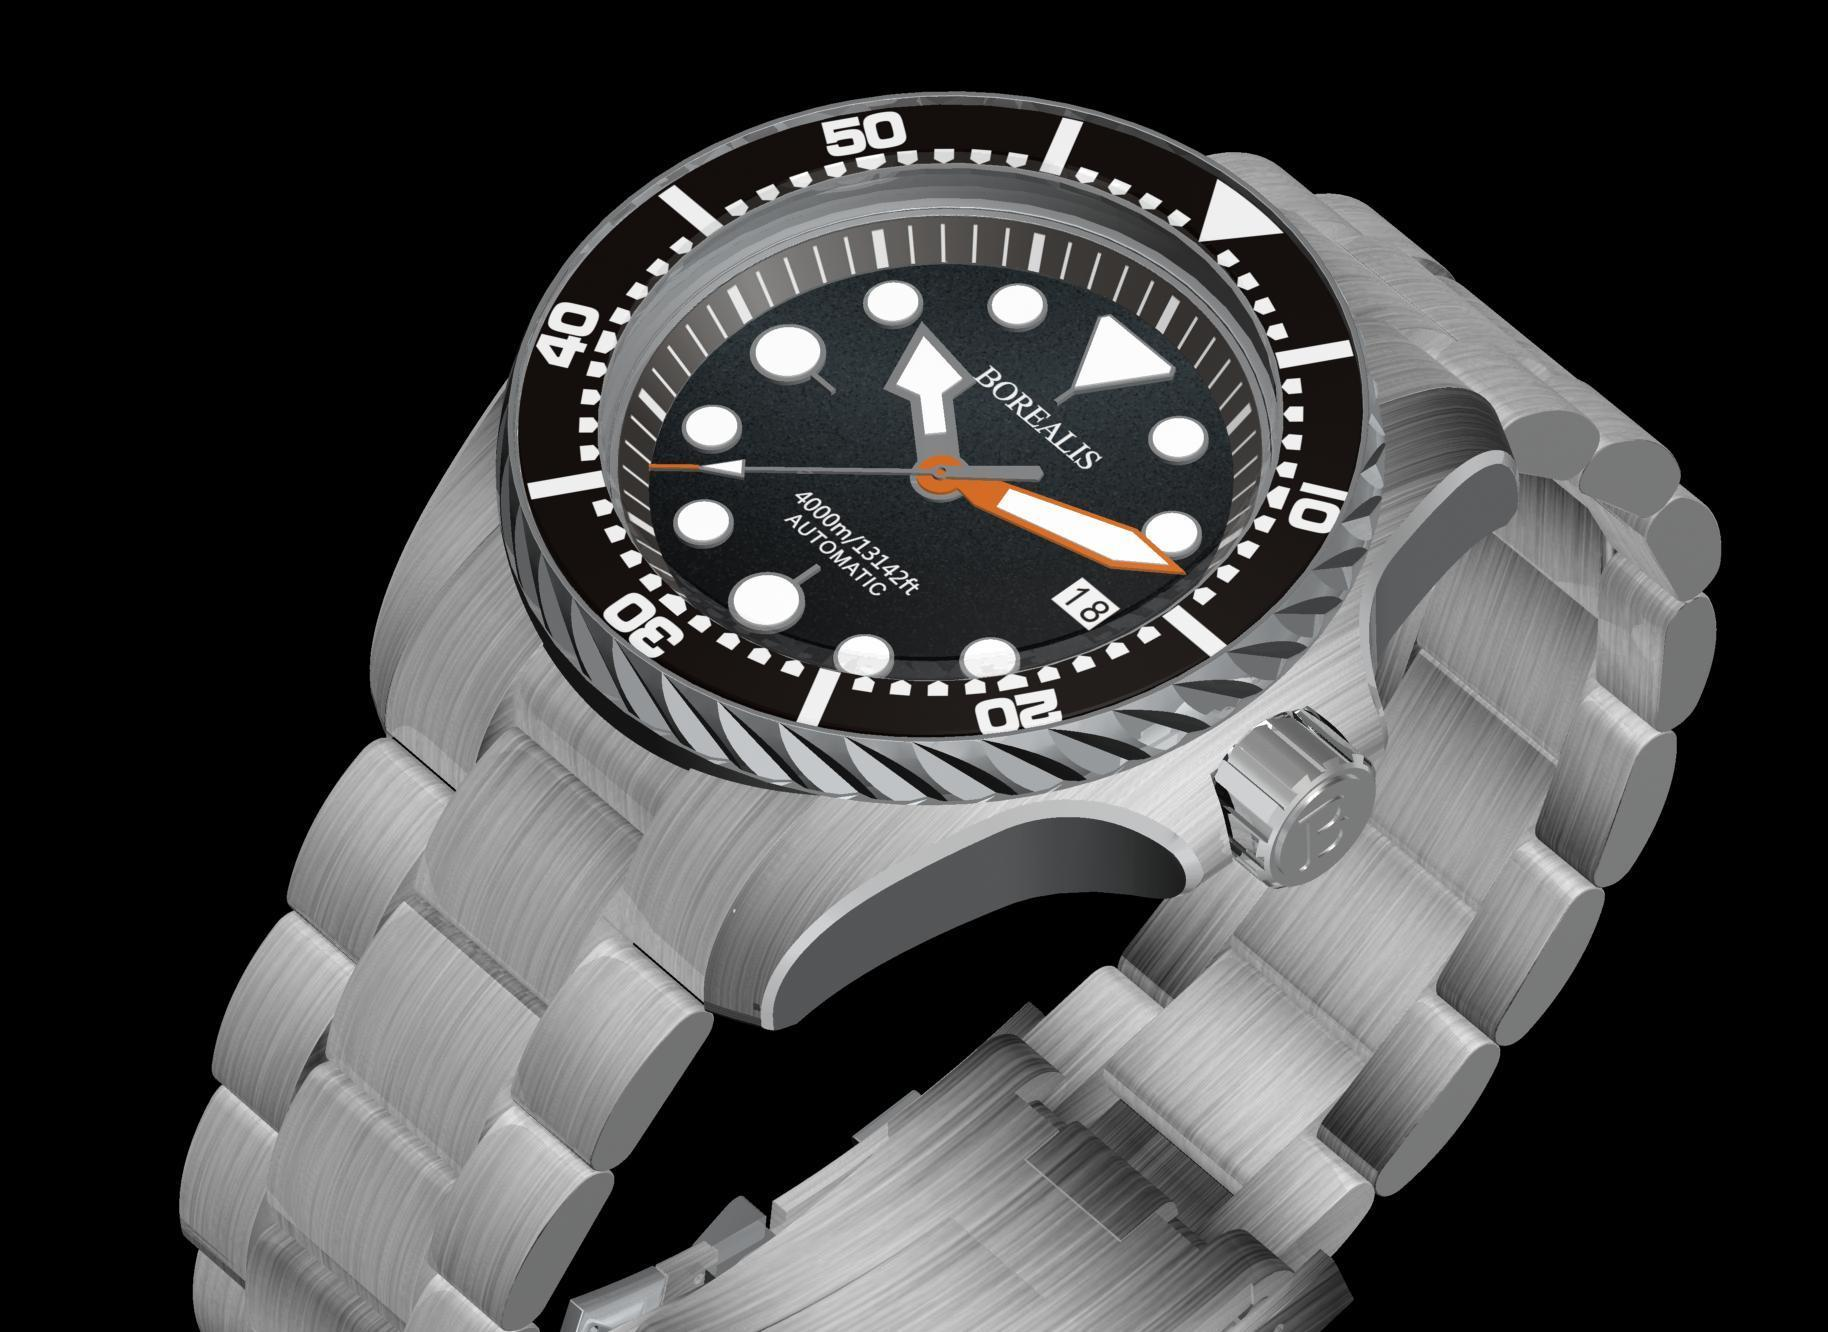 Borealis Seafarer II Stainless Steel Black BGW9 Sapphire Turbine Style Grip Bezel 4000m Miyota 9015 Automatic Diver Watch